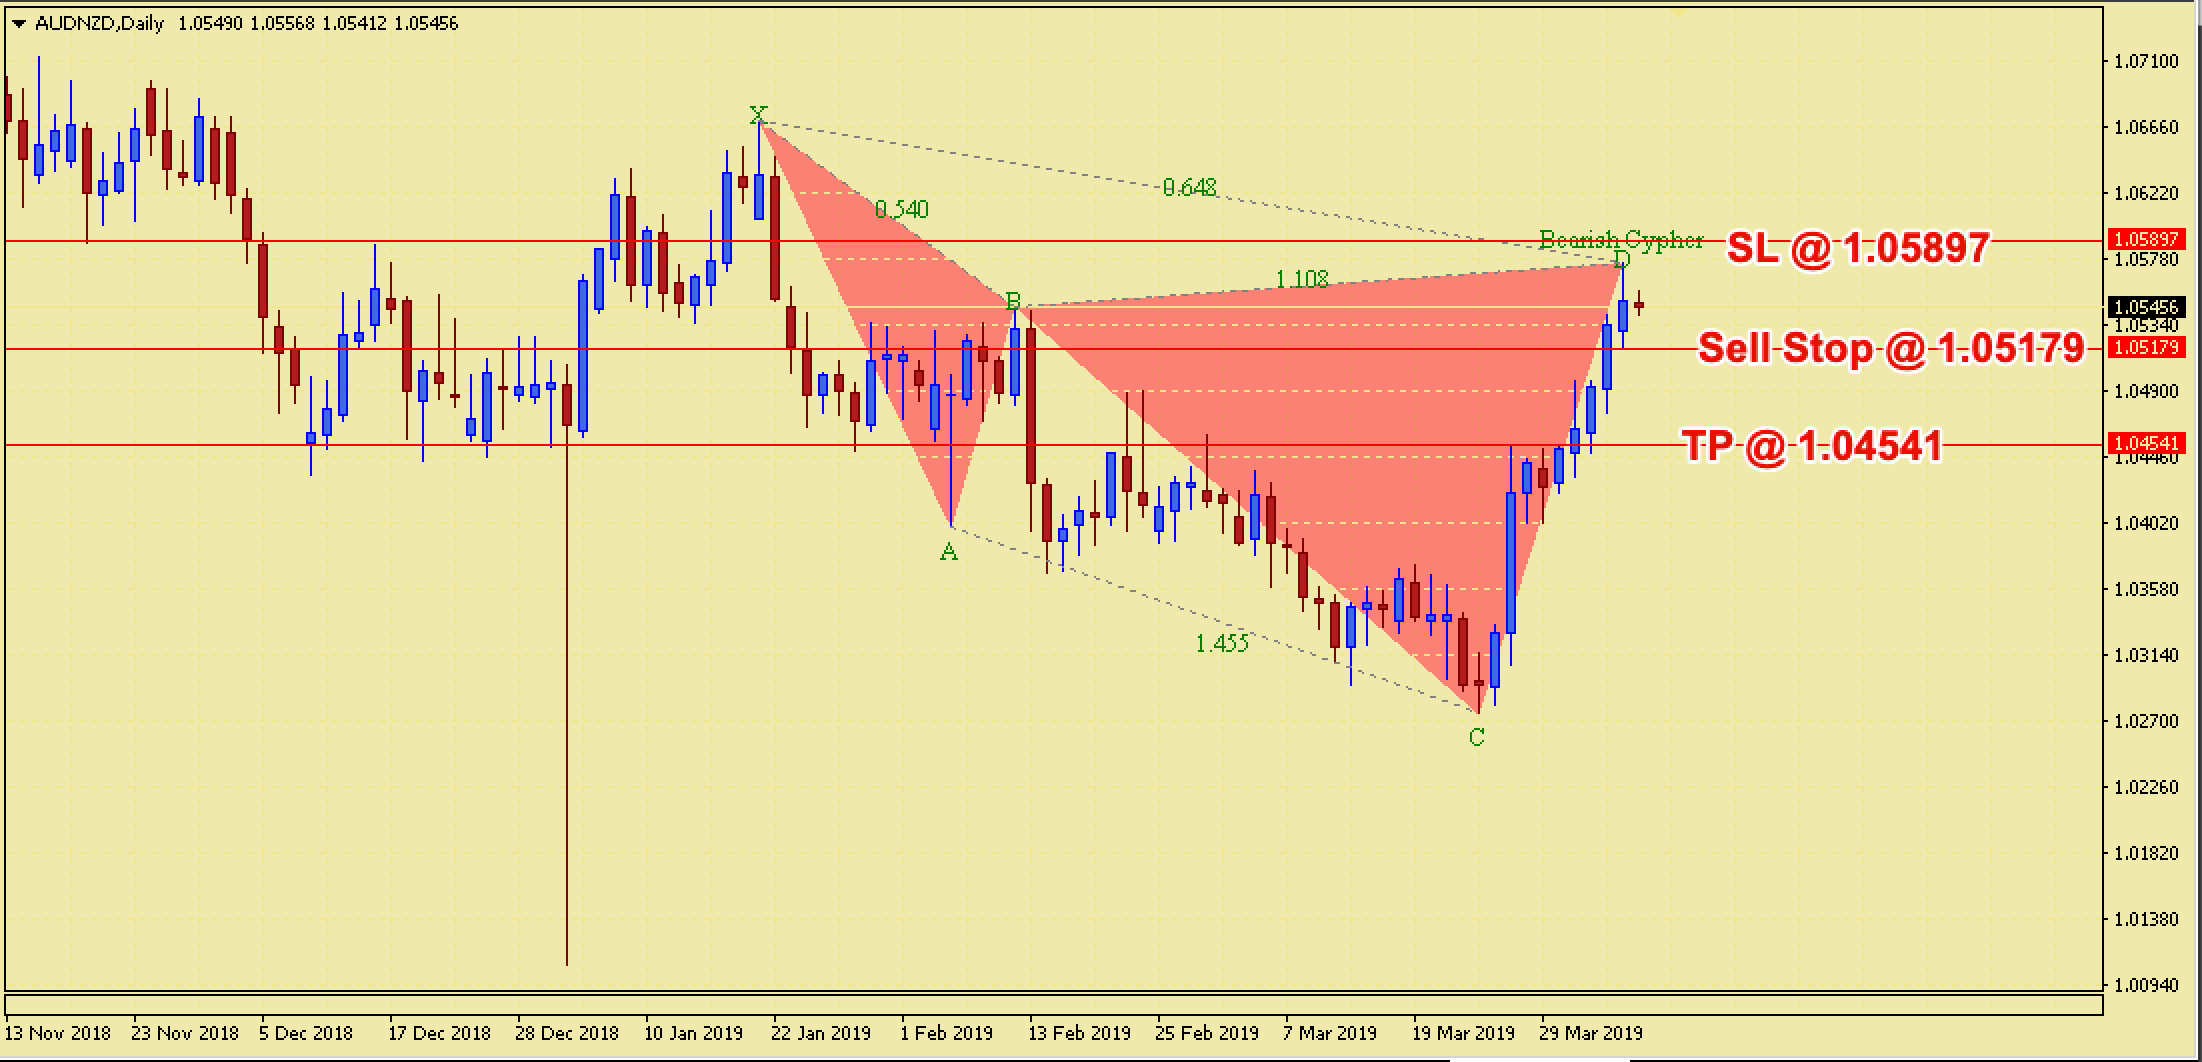 AUDNZD Bearish Cypher Harmonic Pattern - 8th April 2019